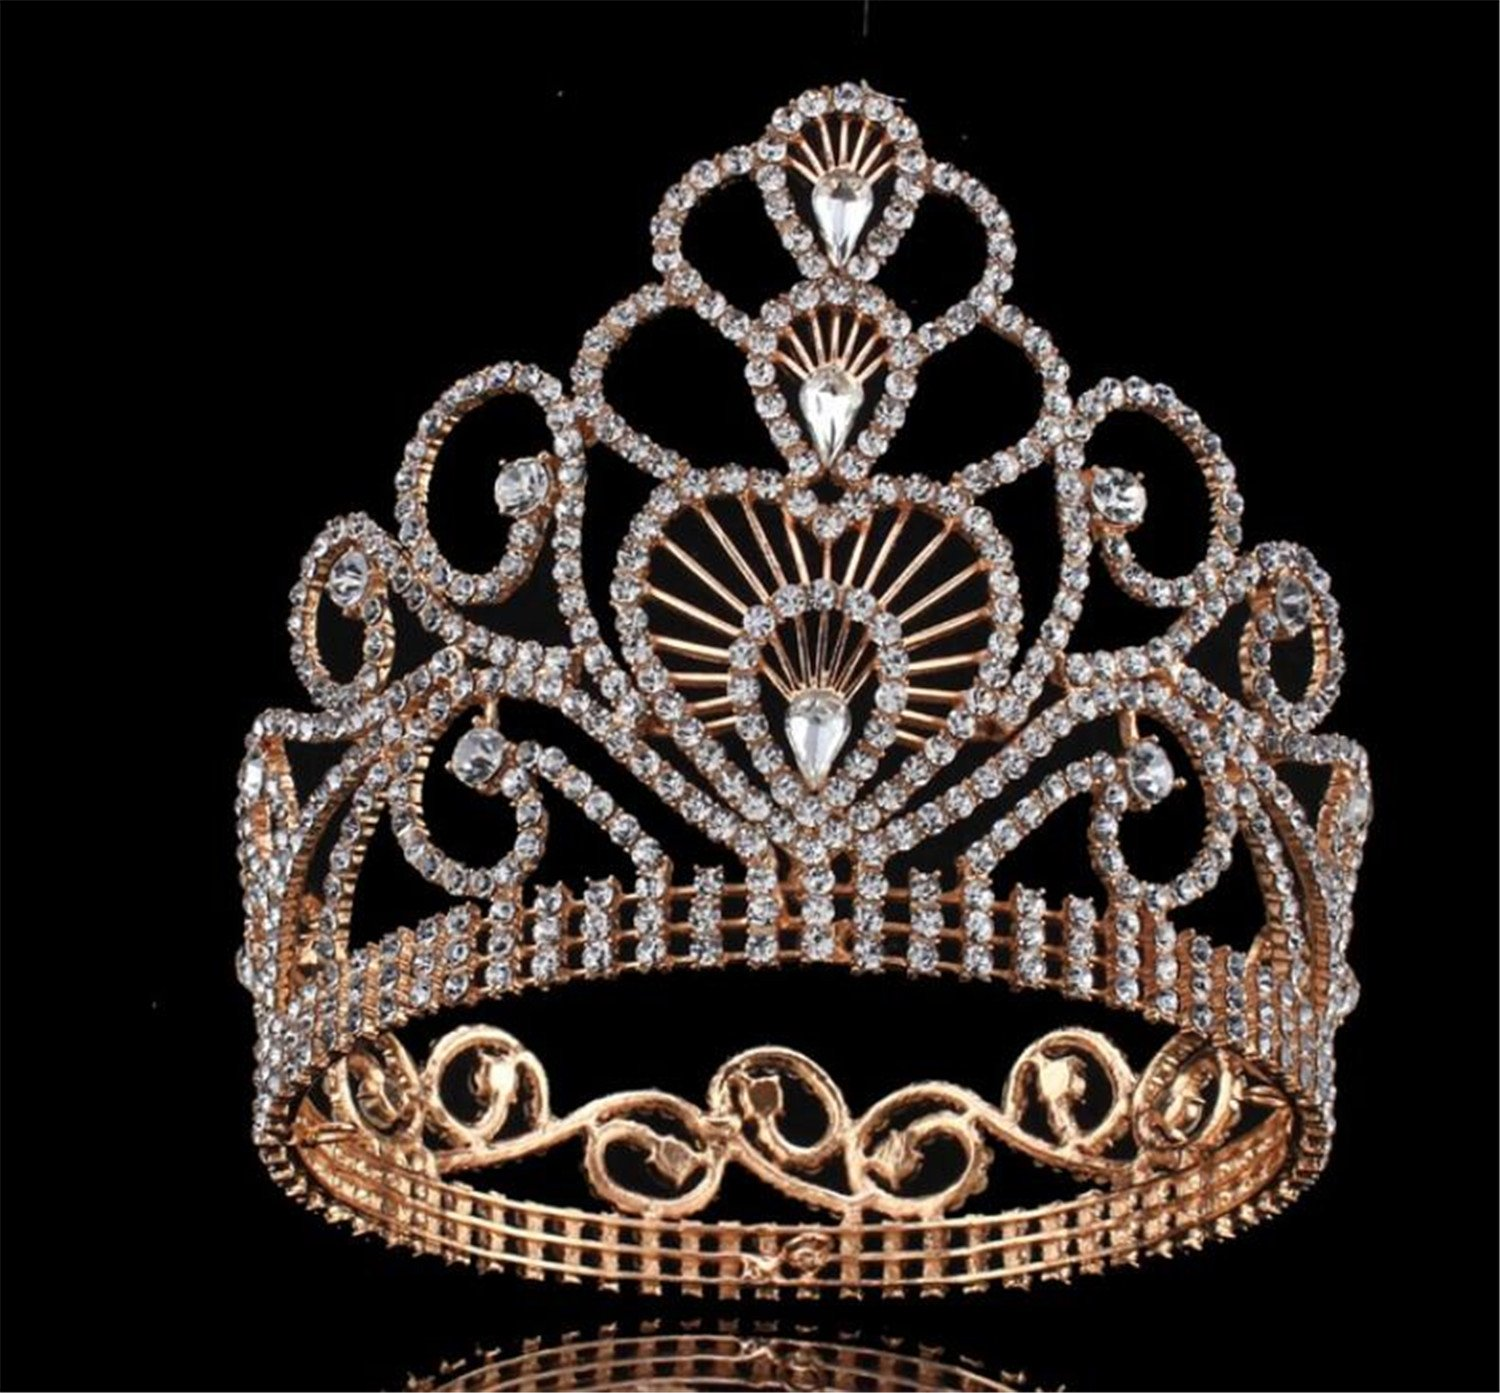 Wiipu 4.6'' High Round Royal Sparkly Rhinestones Tiaras Crowns,5.8'' Diameter(A1367) (Gold) by WIIPU (Image #2)